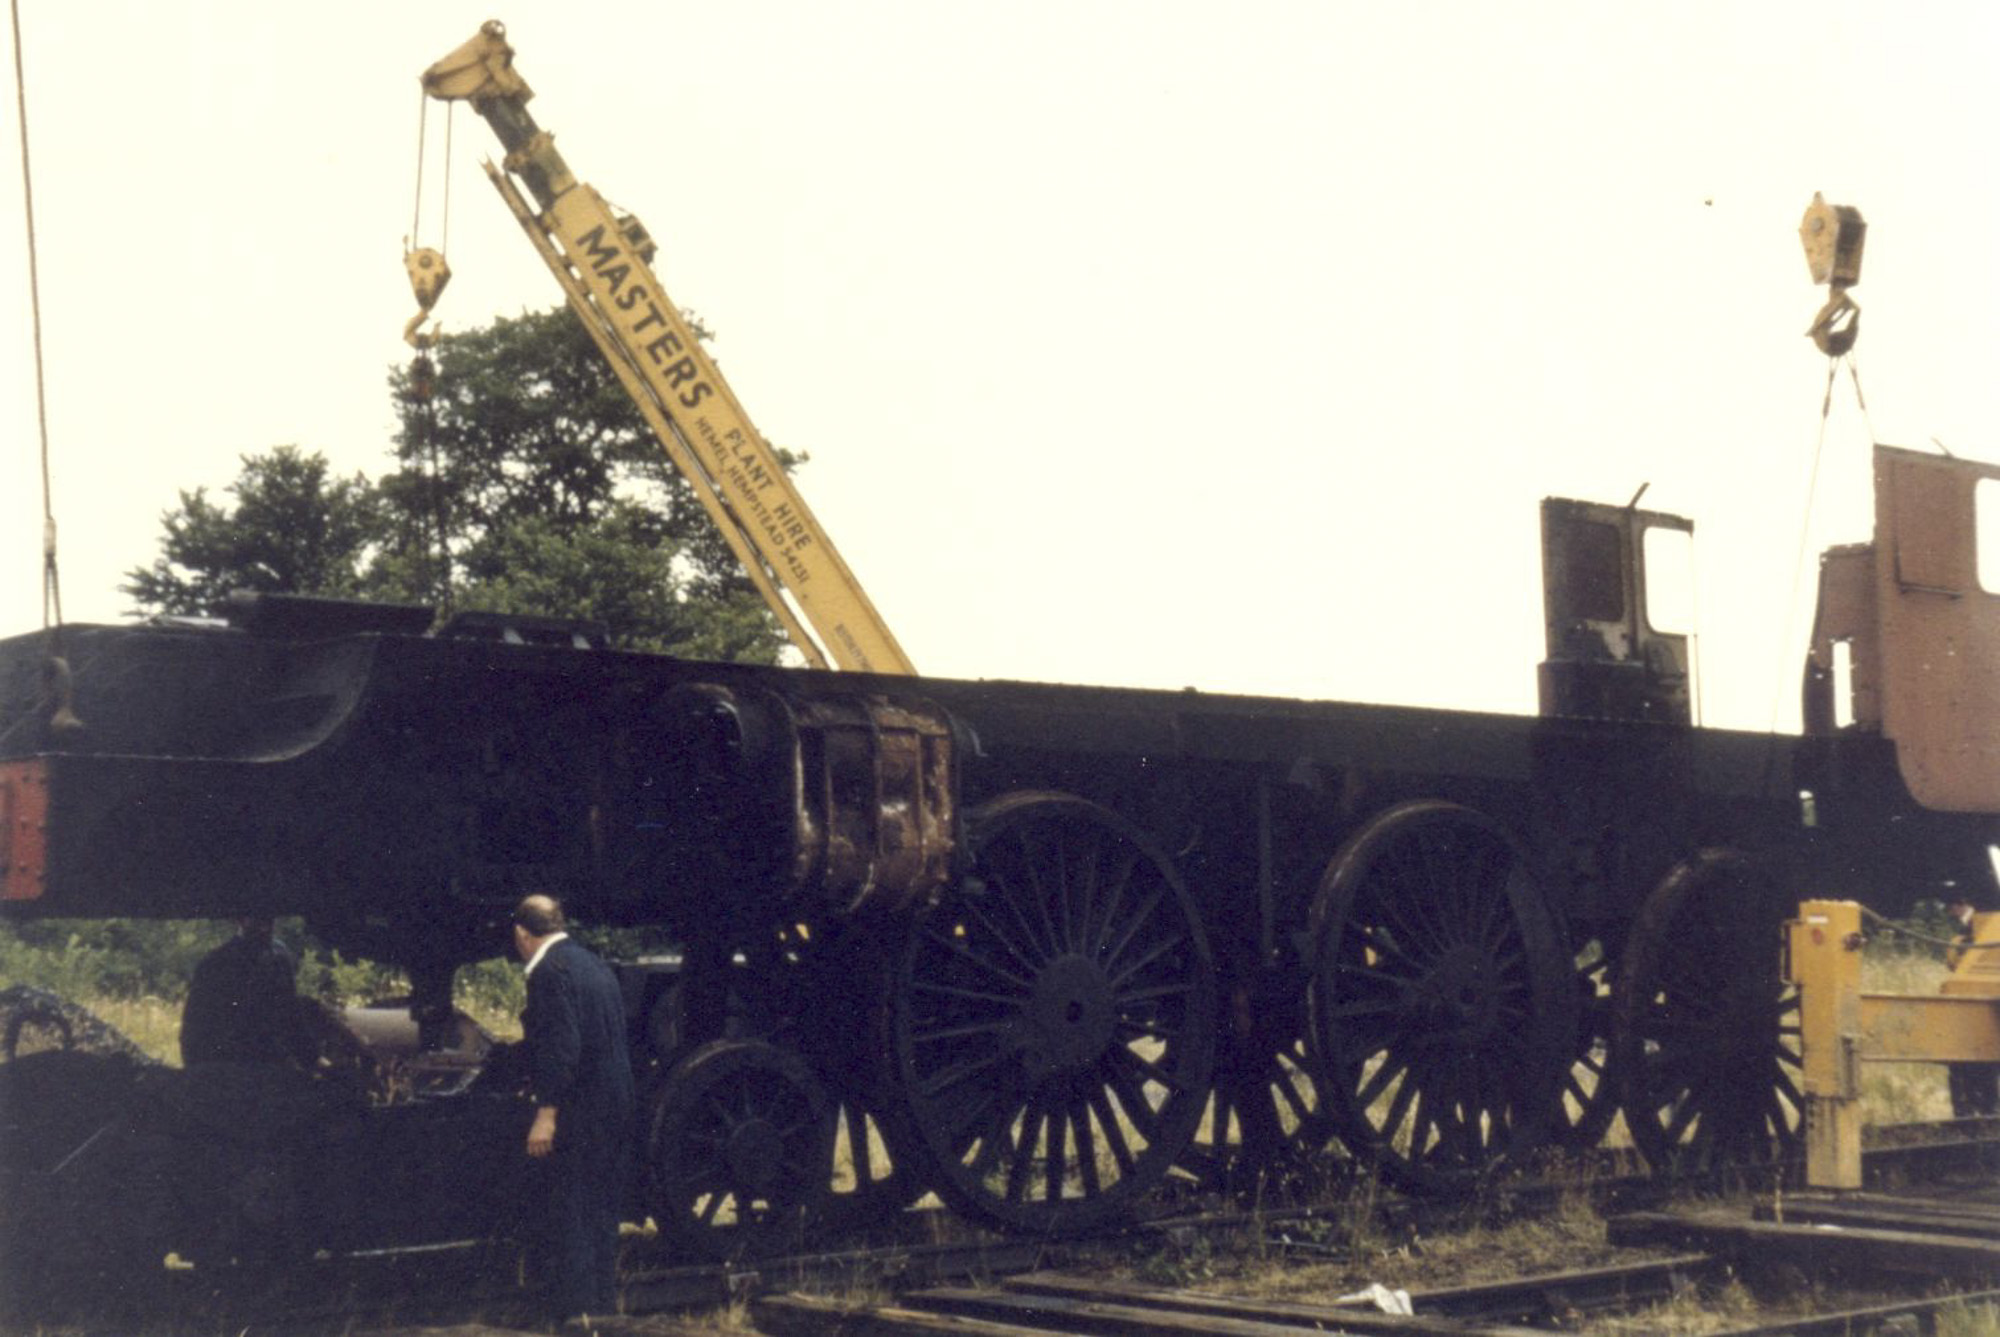 Stripping the locomotive, 27 July 1974. © Unknown, please contact us if you know the photographer